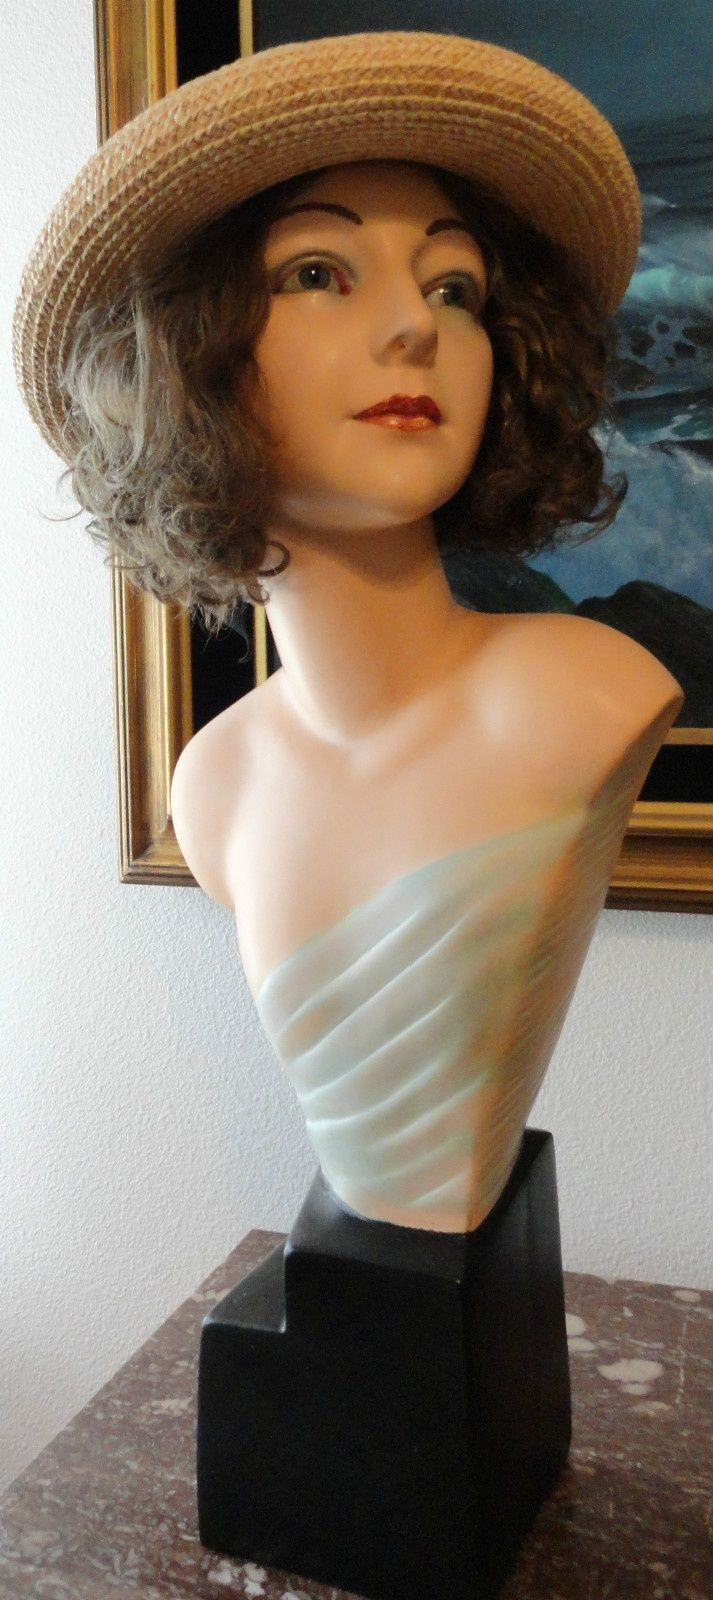 antique mannequin | Antique French Mannequin Glass Eyes Late 19th C to Early 20th C ...